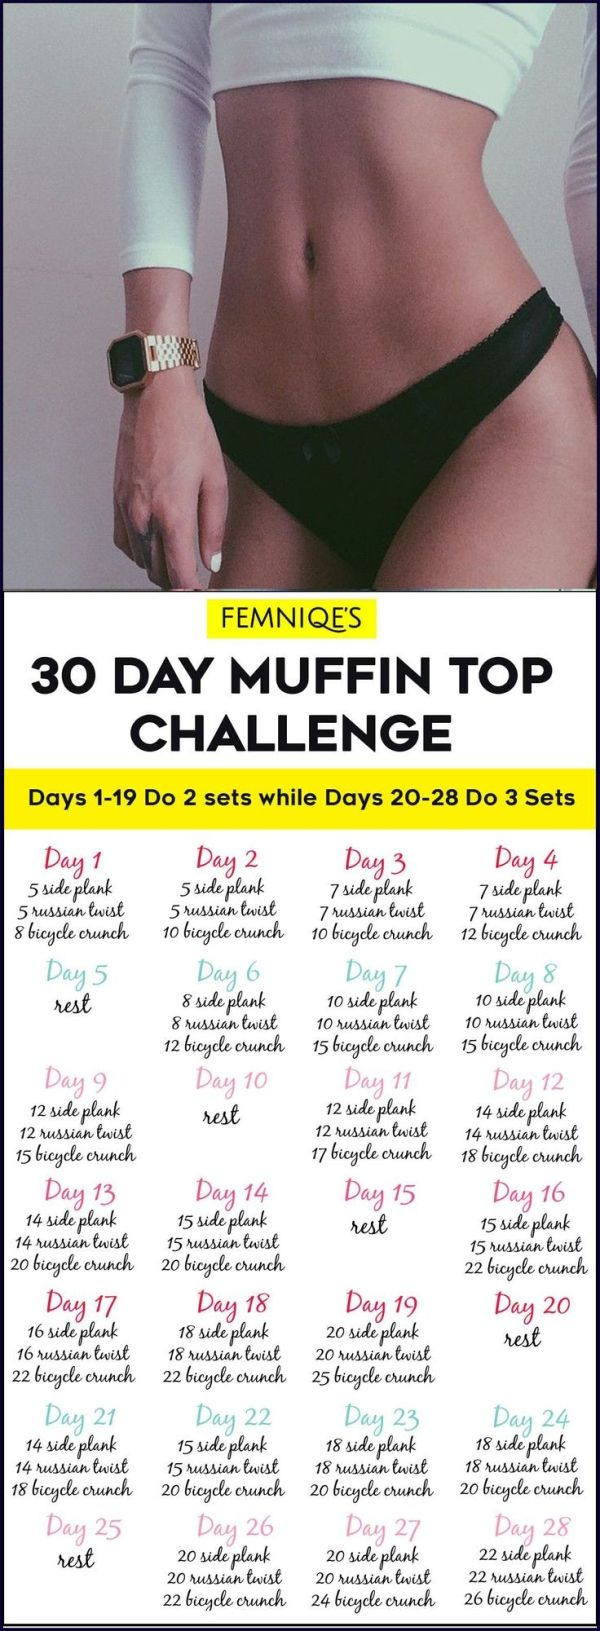 30 Day Muffin Top Challenge Workout/Exercise Calendar Love Handles - This 30 Day Muffin Top Challenge will help you get a smaller waist showing your true curves! by jjenkins